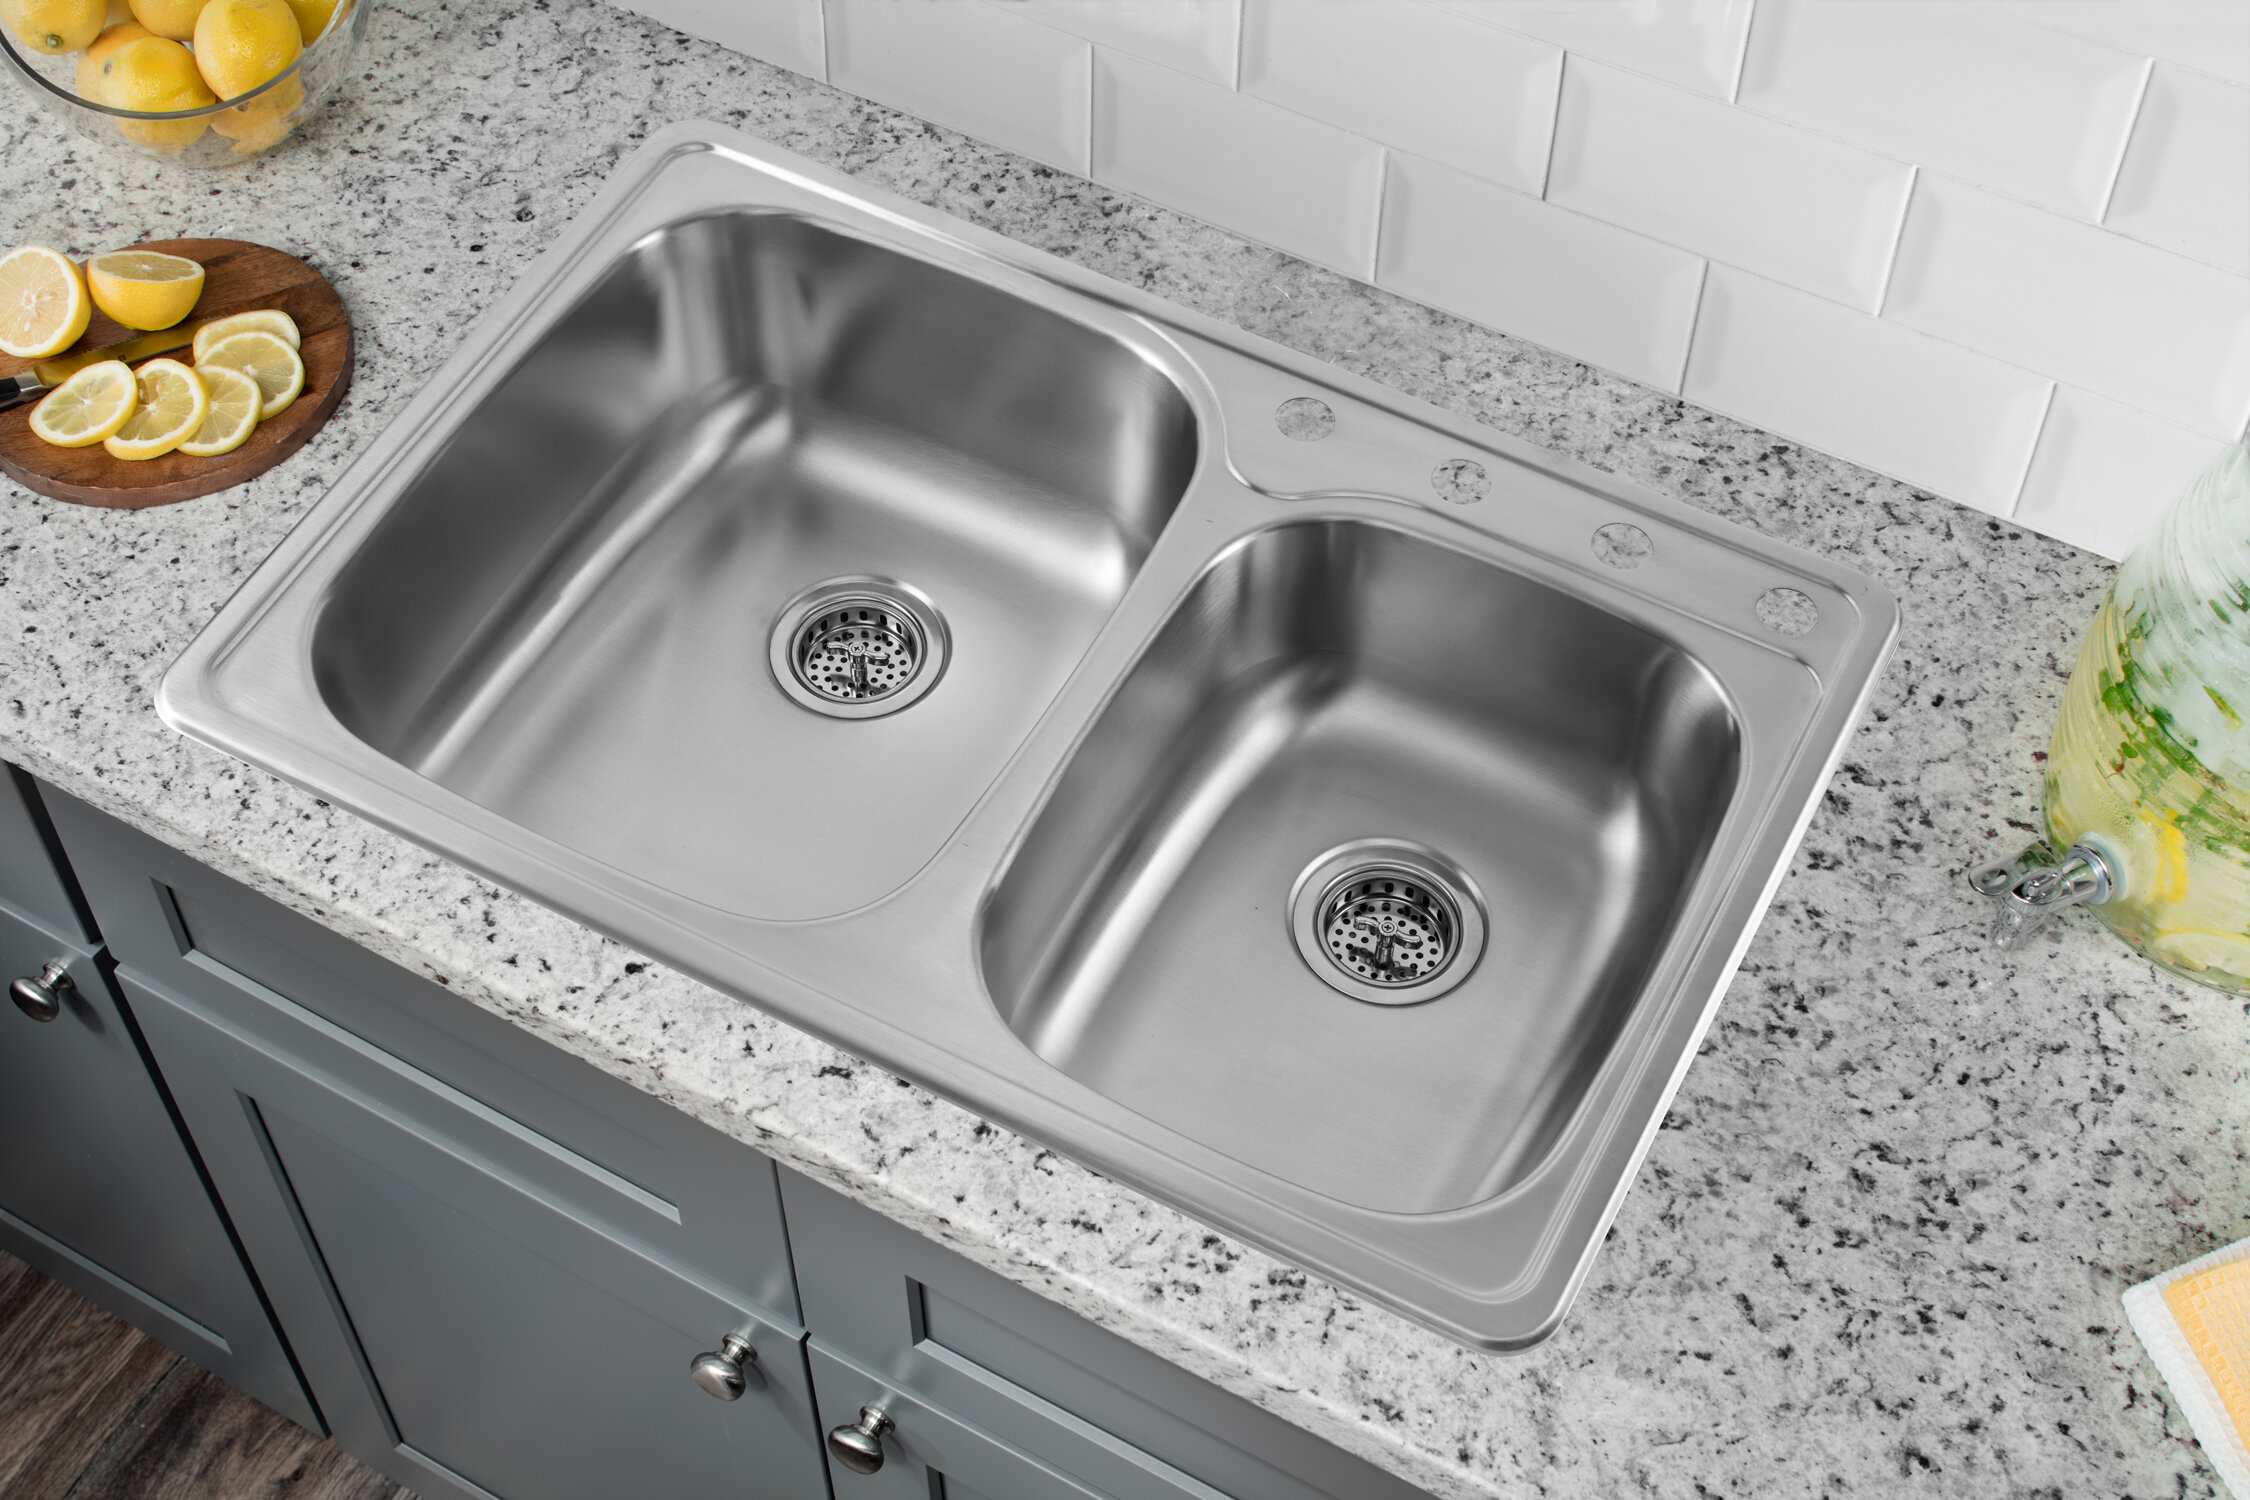 Peachy 22 L X 19 W Double Basin Drop In Kitchen Sink Complete Home Design Collection Lindsey Bellcom